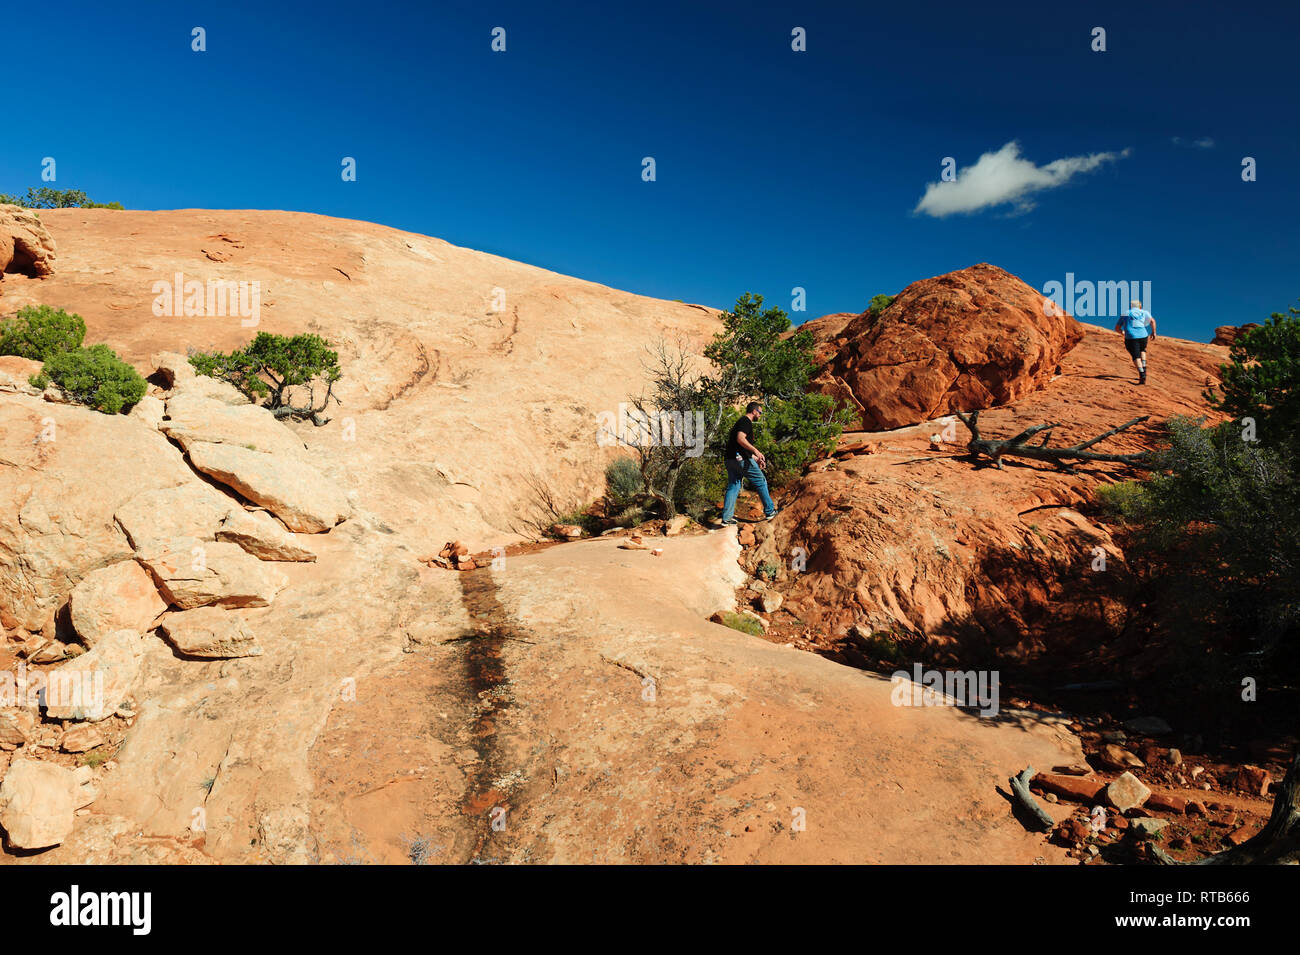 Two men hiking on Upheaval Dome Overlook trail, Canyonland National Park, Utah, USA - Stock Image